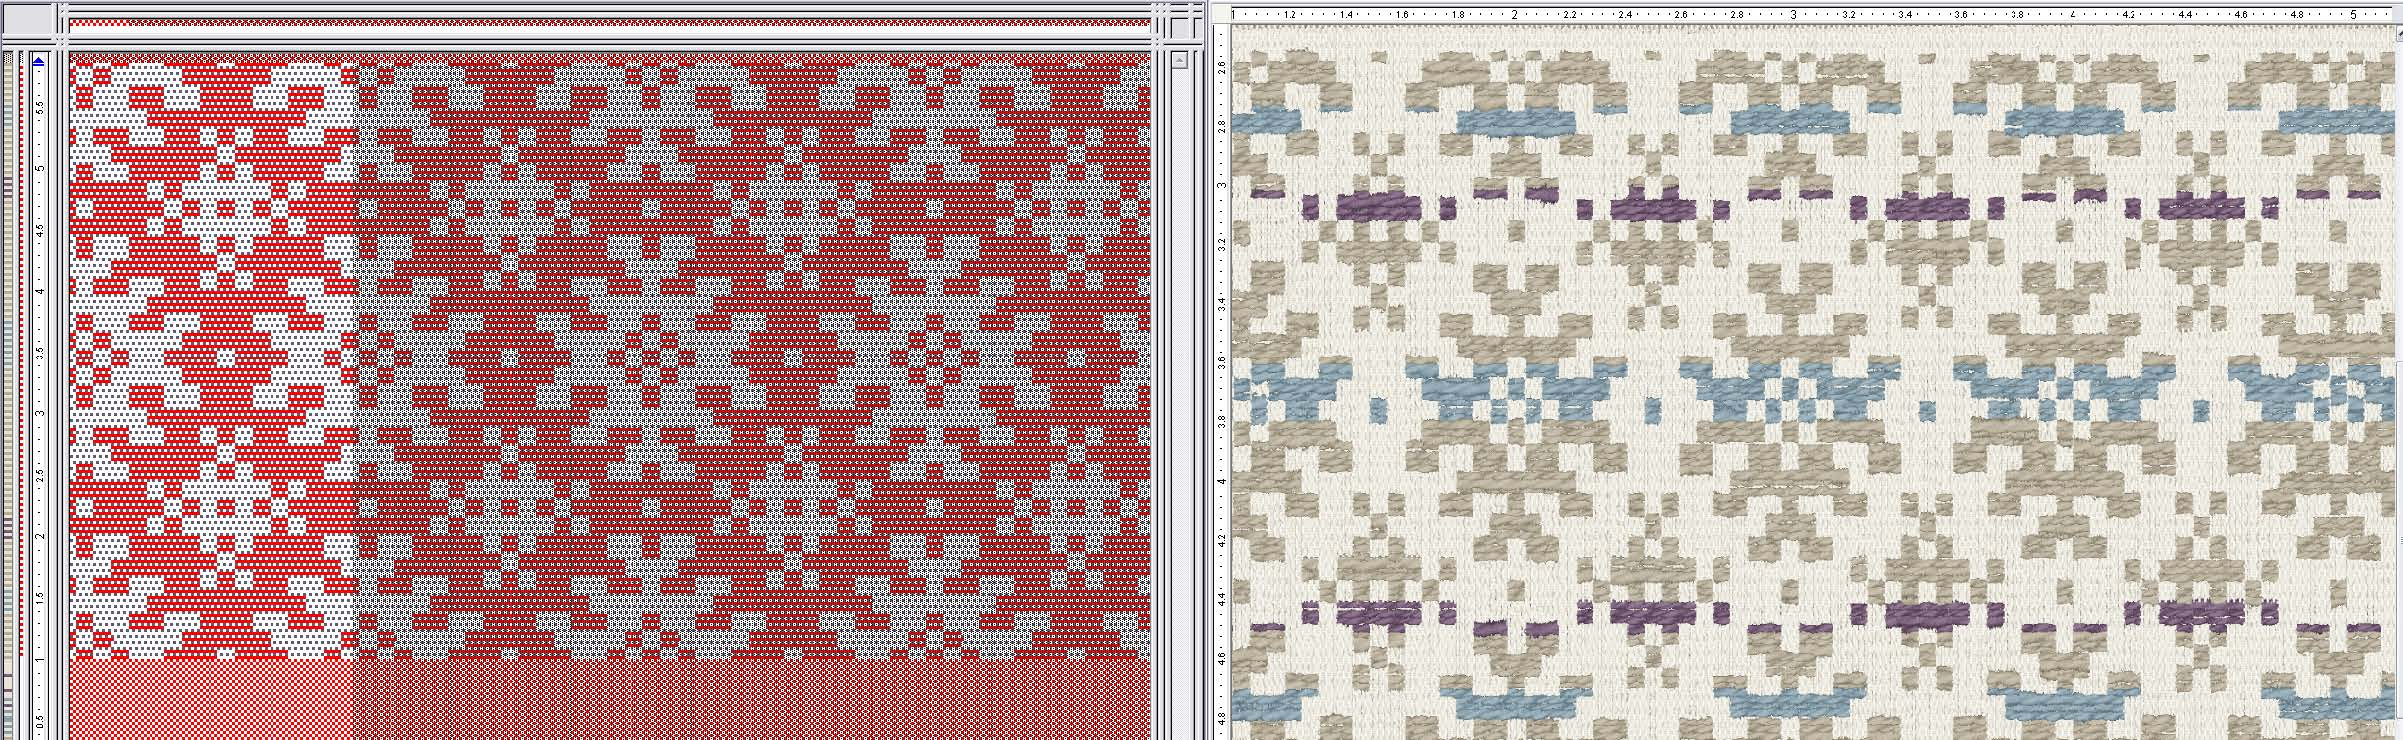 two patterns side by side showing weave and virtual samples at the same time